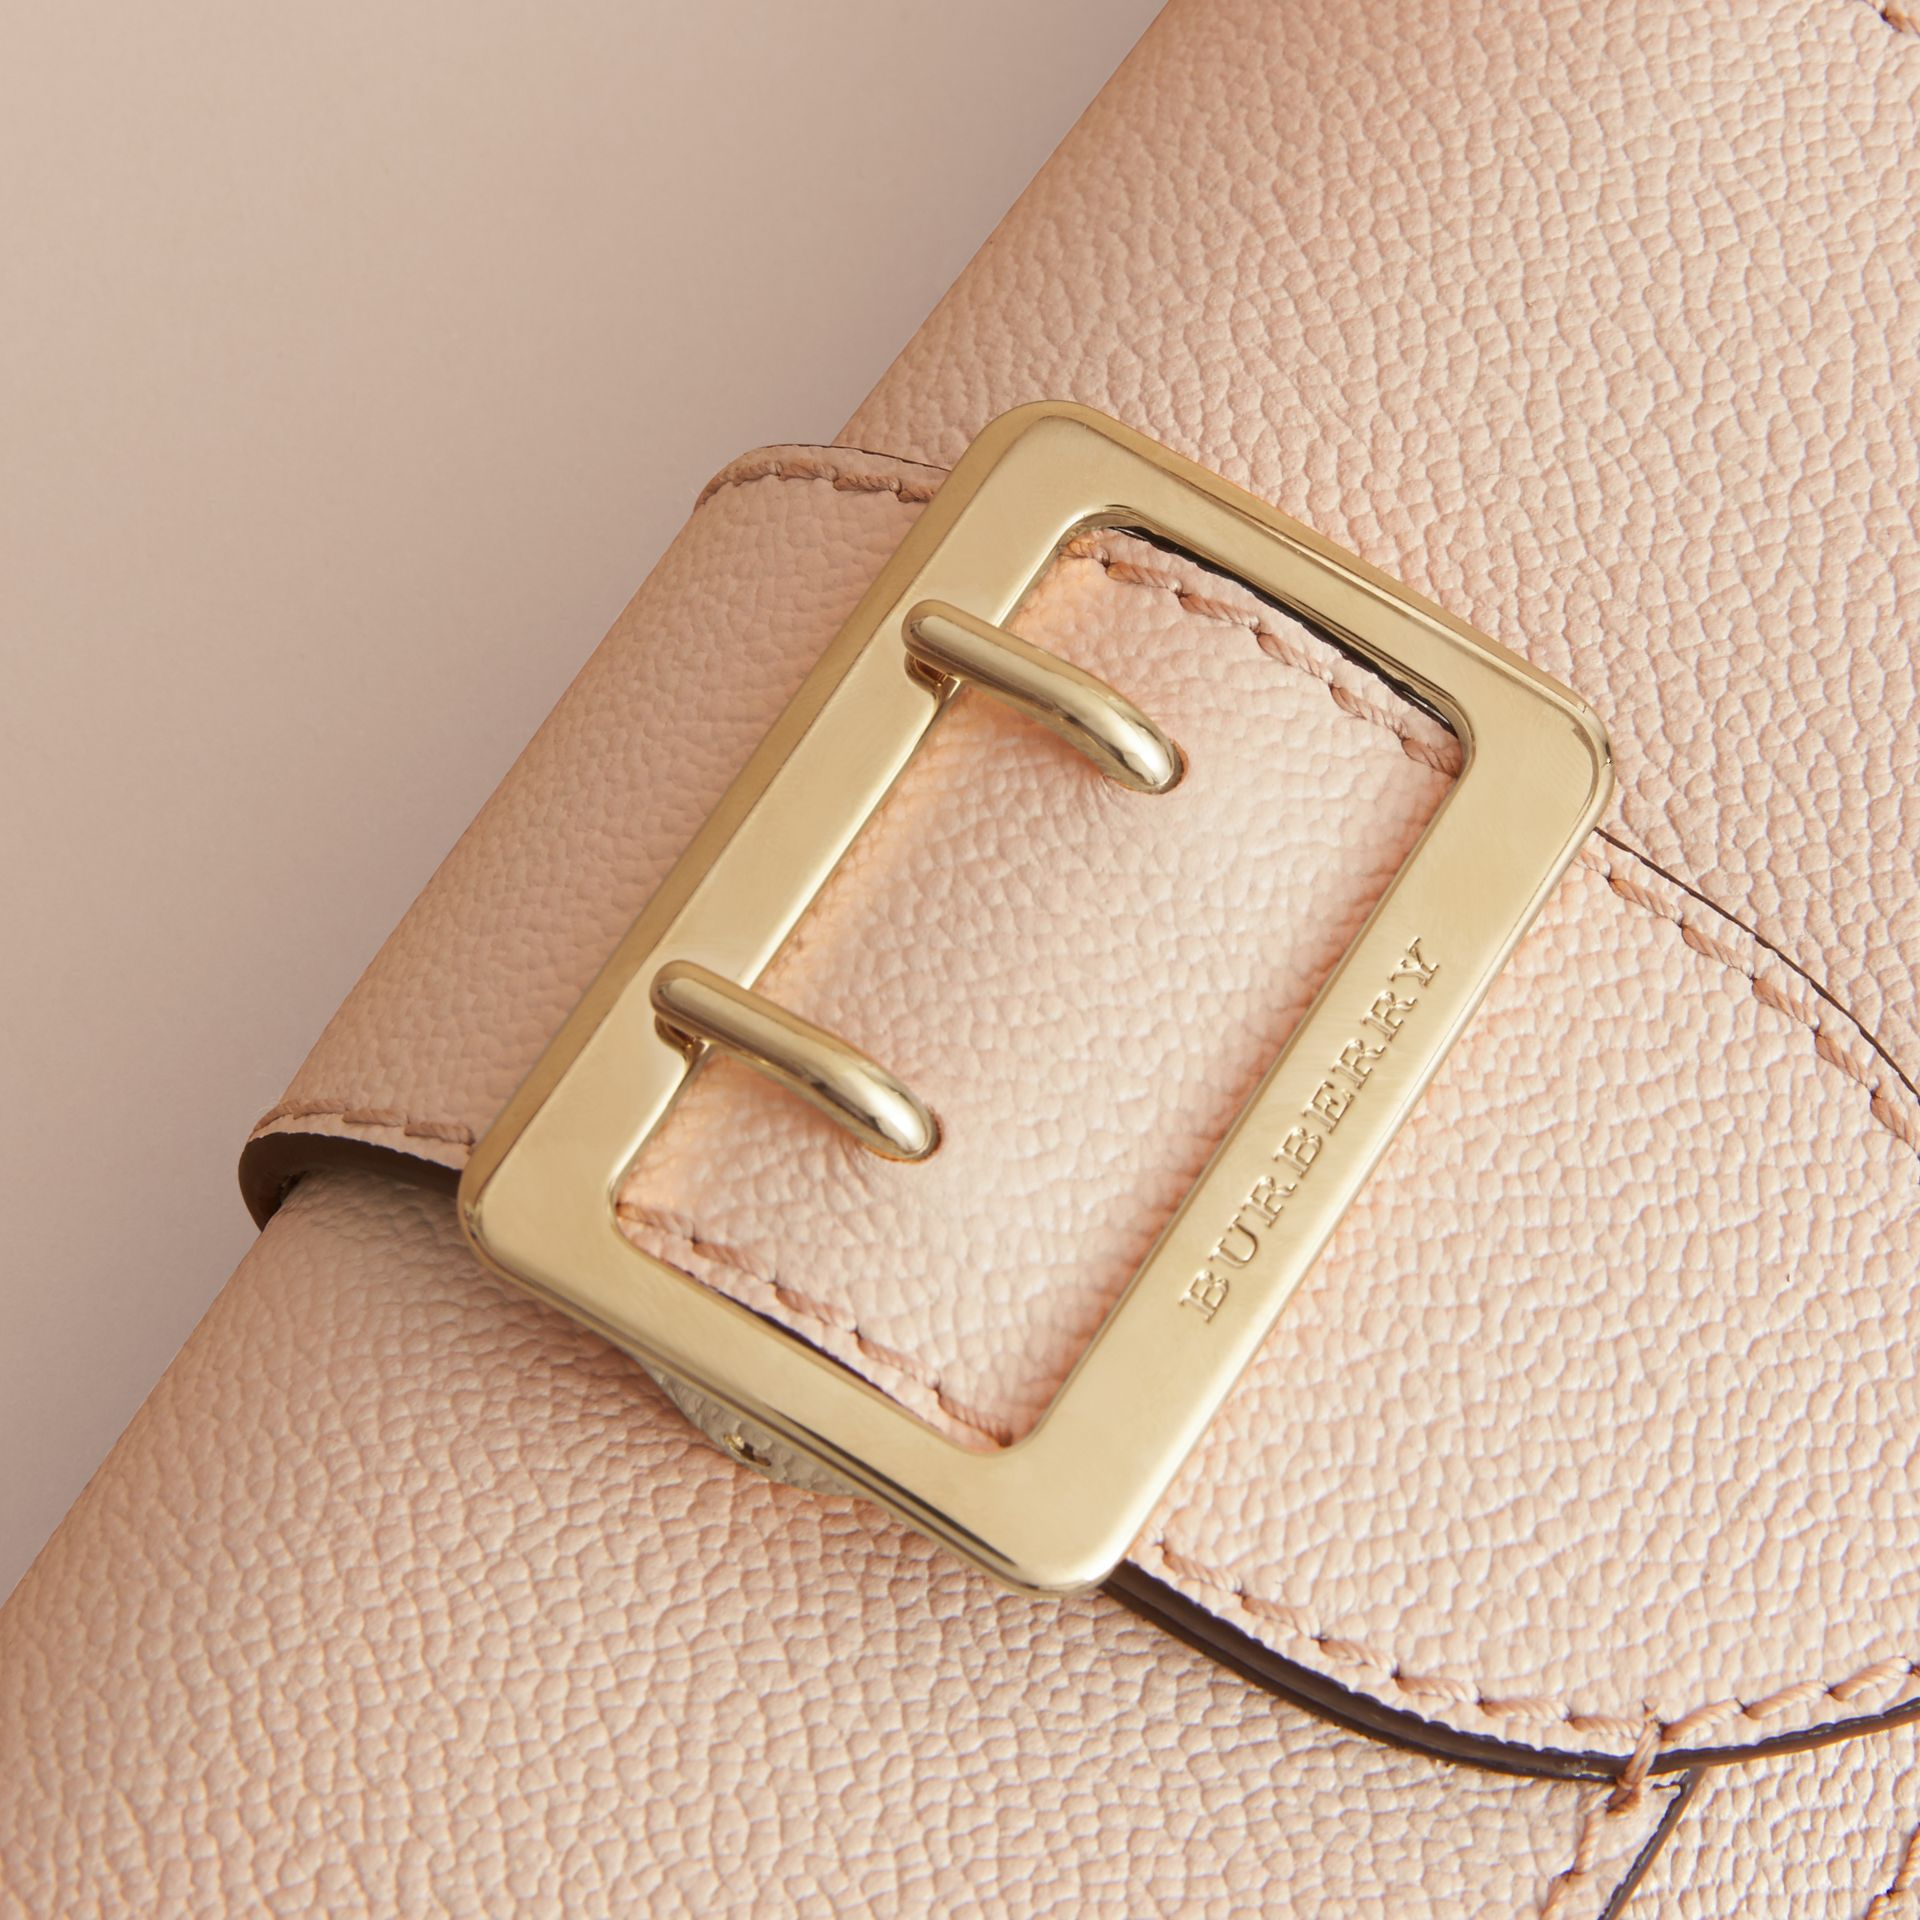 The Mini Buckle Bag in Grainy Leather in Limestone - Women | Burberry - gallery image 2